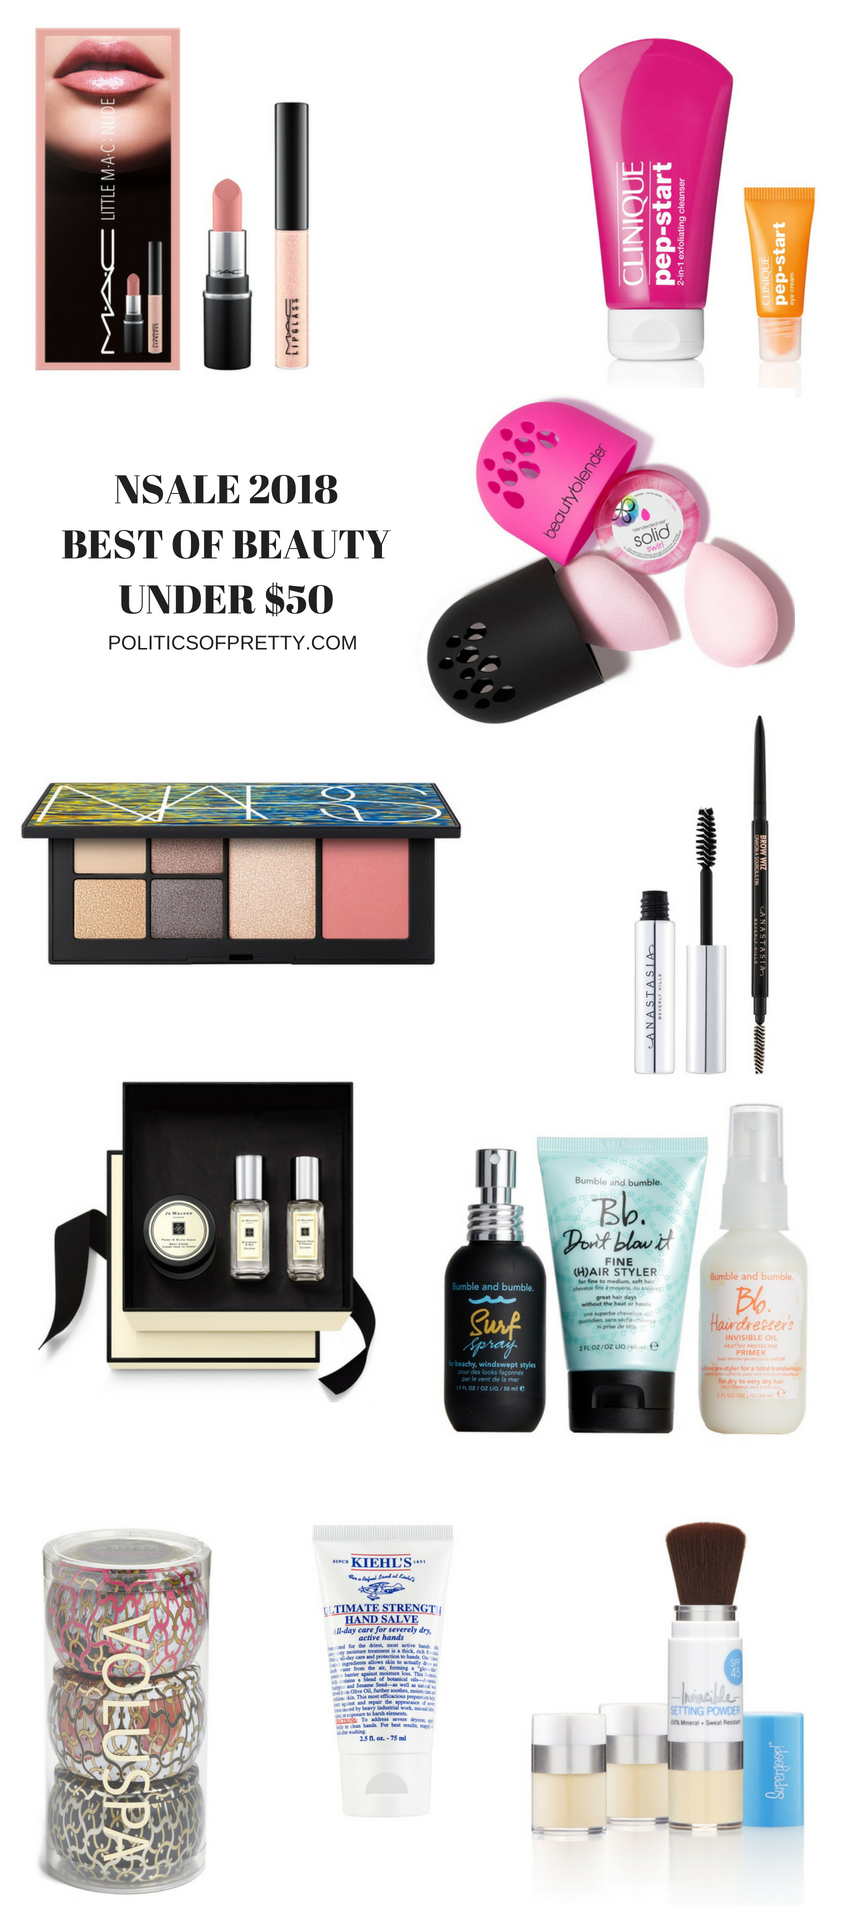 Nordstrom Beauty Exclusives under $50, beauty on a budget dc beauty blogger #nsale2018